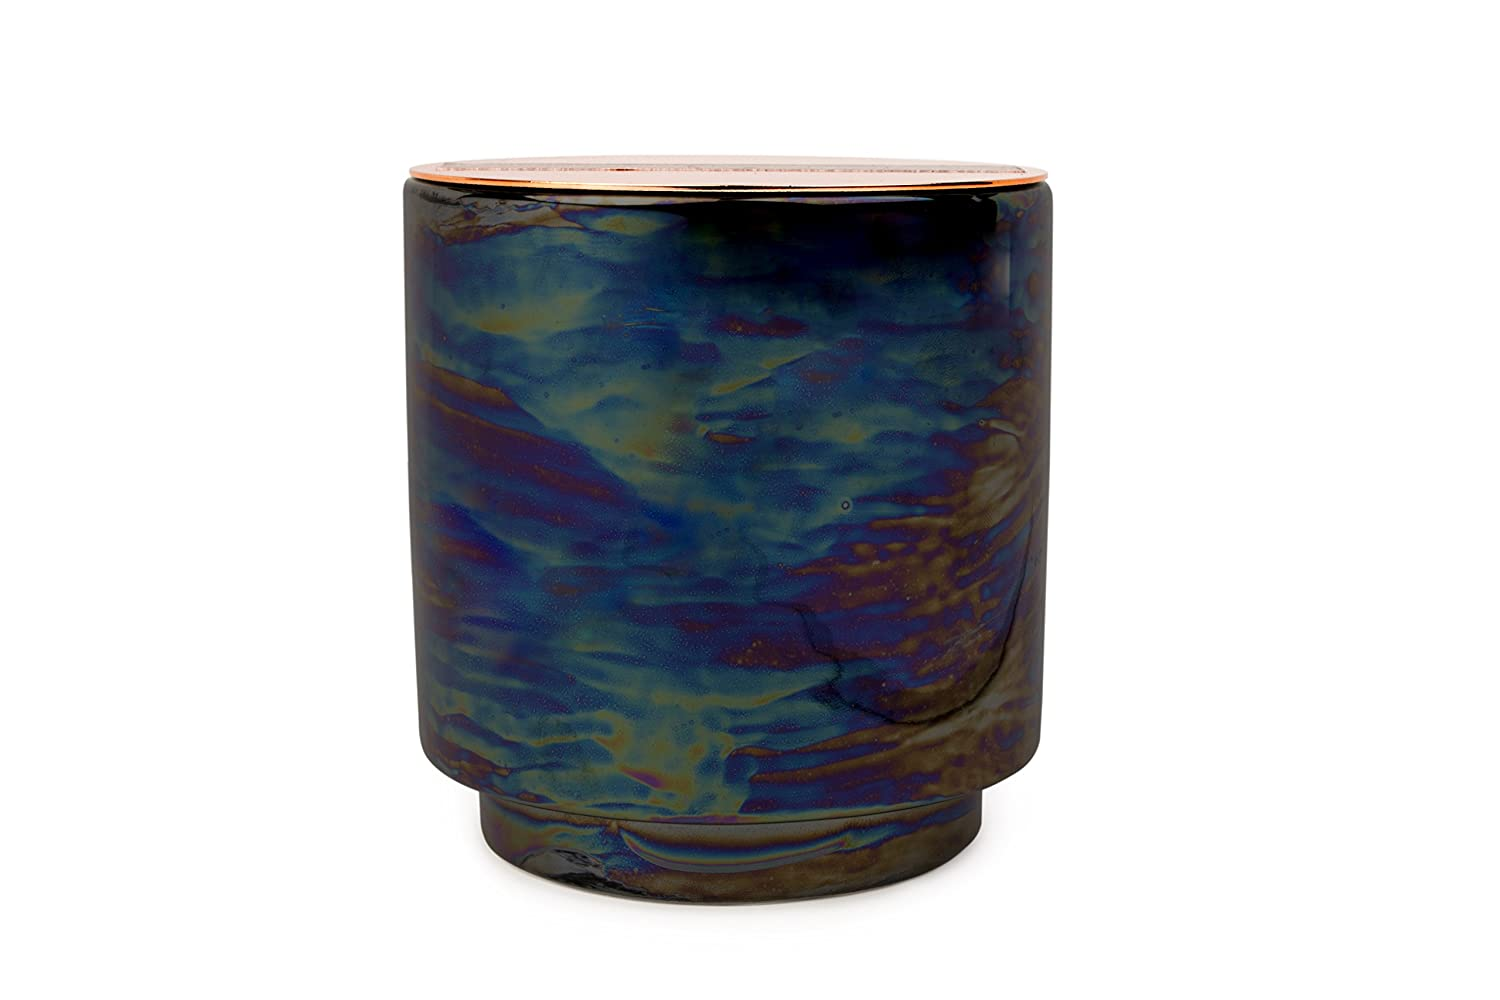 Paddywax Candles Glow Collection Scented Soy Wax Blend Candle in Iridescent  Ceramic Pot, Medium- 17 Ounce, Incense & Smoke